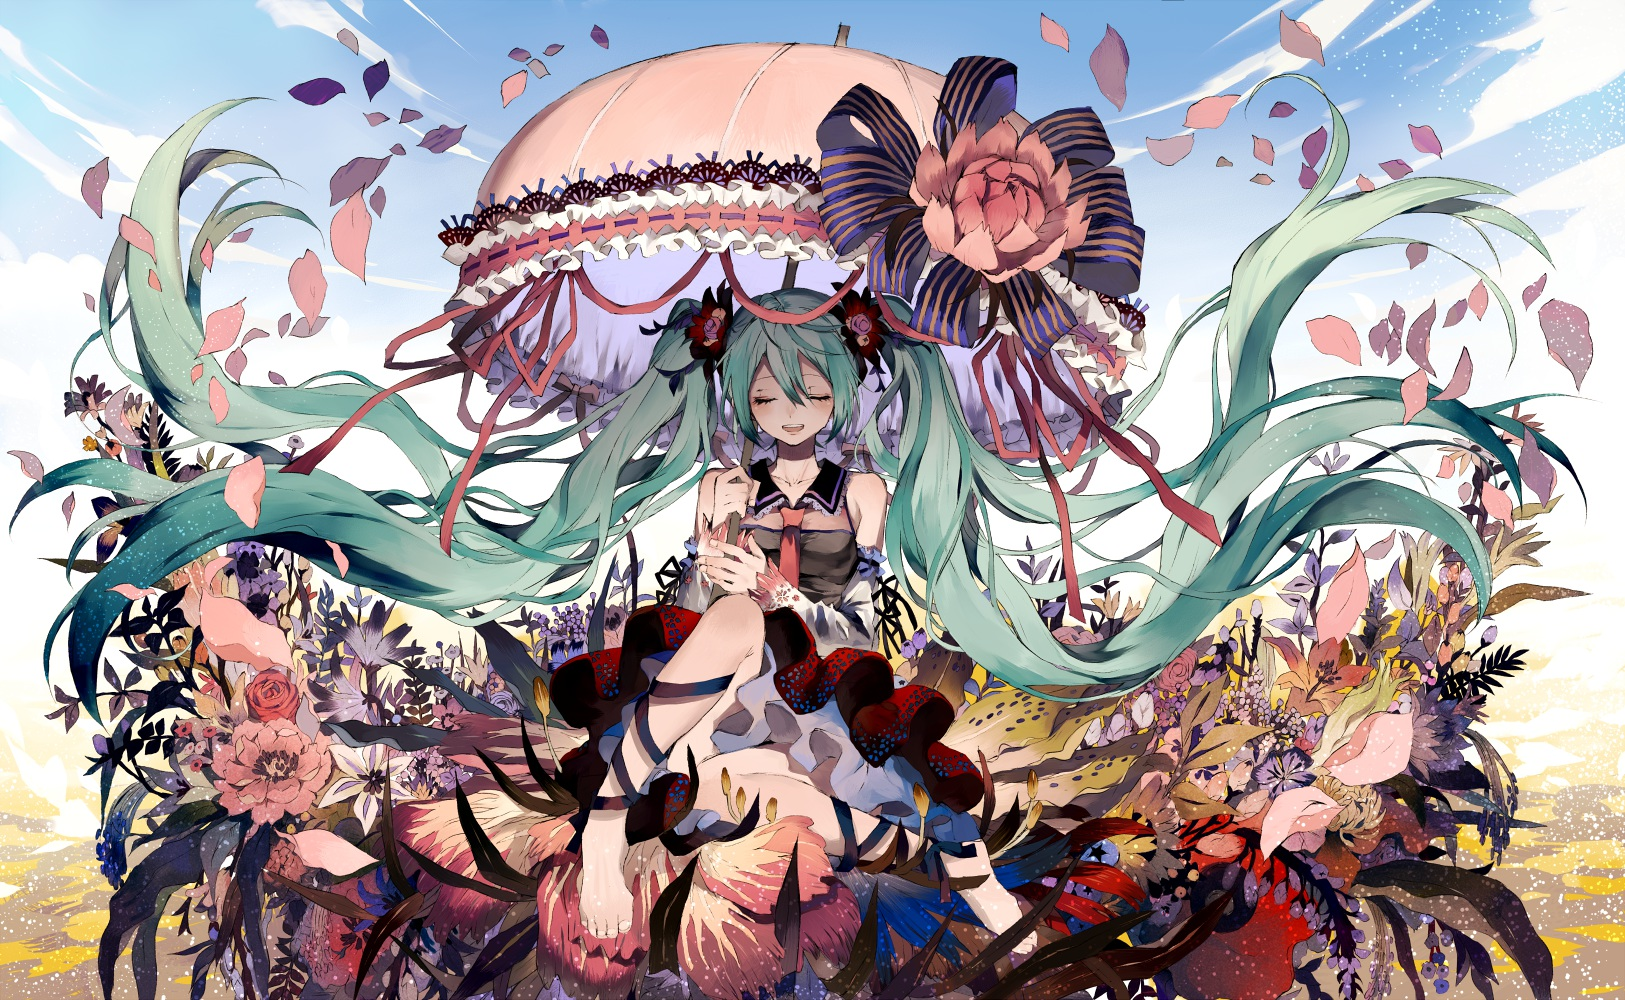 Vocaloid Wallpaper and Background Image | 1625x1000 | ID:462237 - Wallpaper Abyss